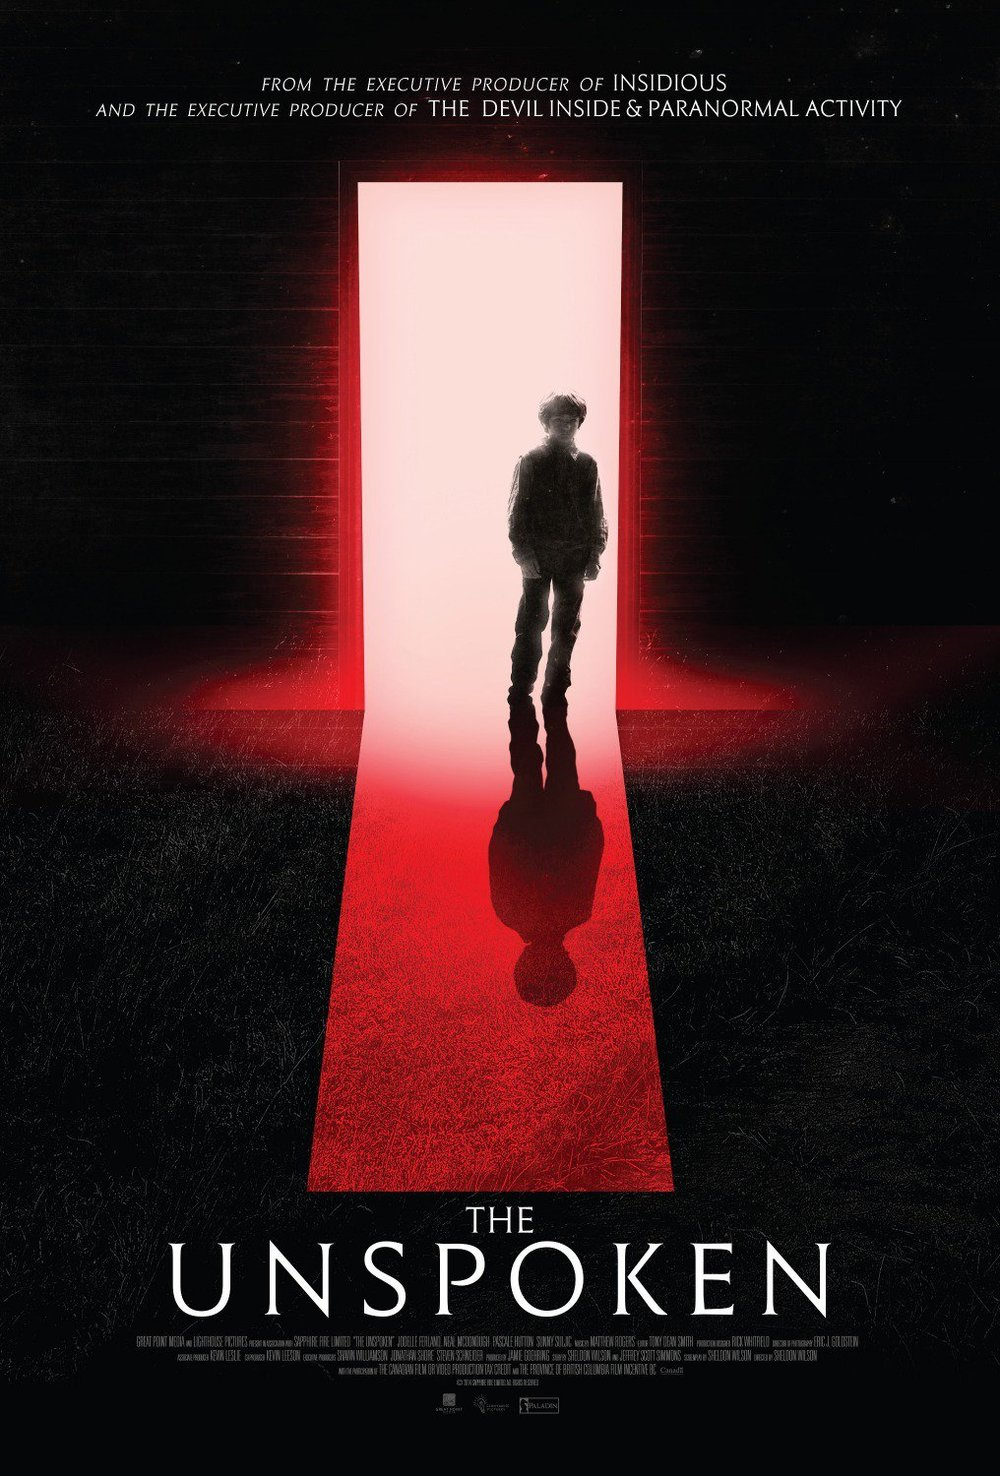 trailer-for-a-fun-looking-ghost-story-thriller-the-unspoken